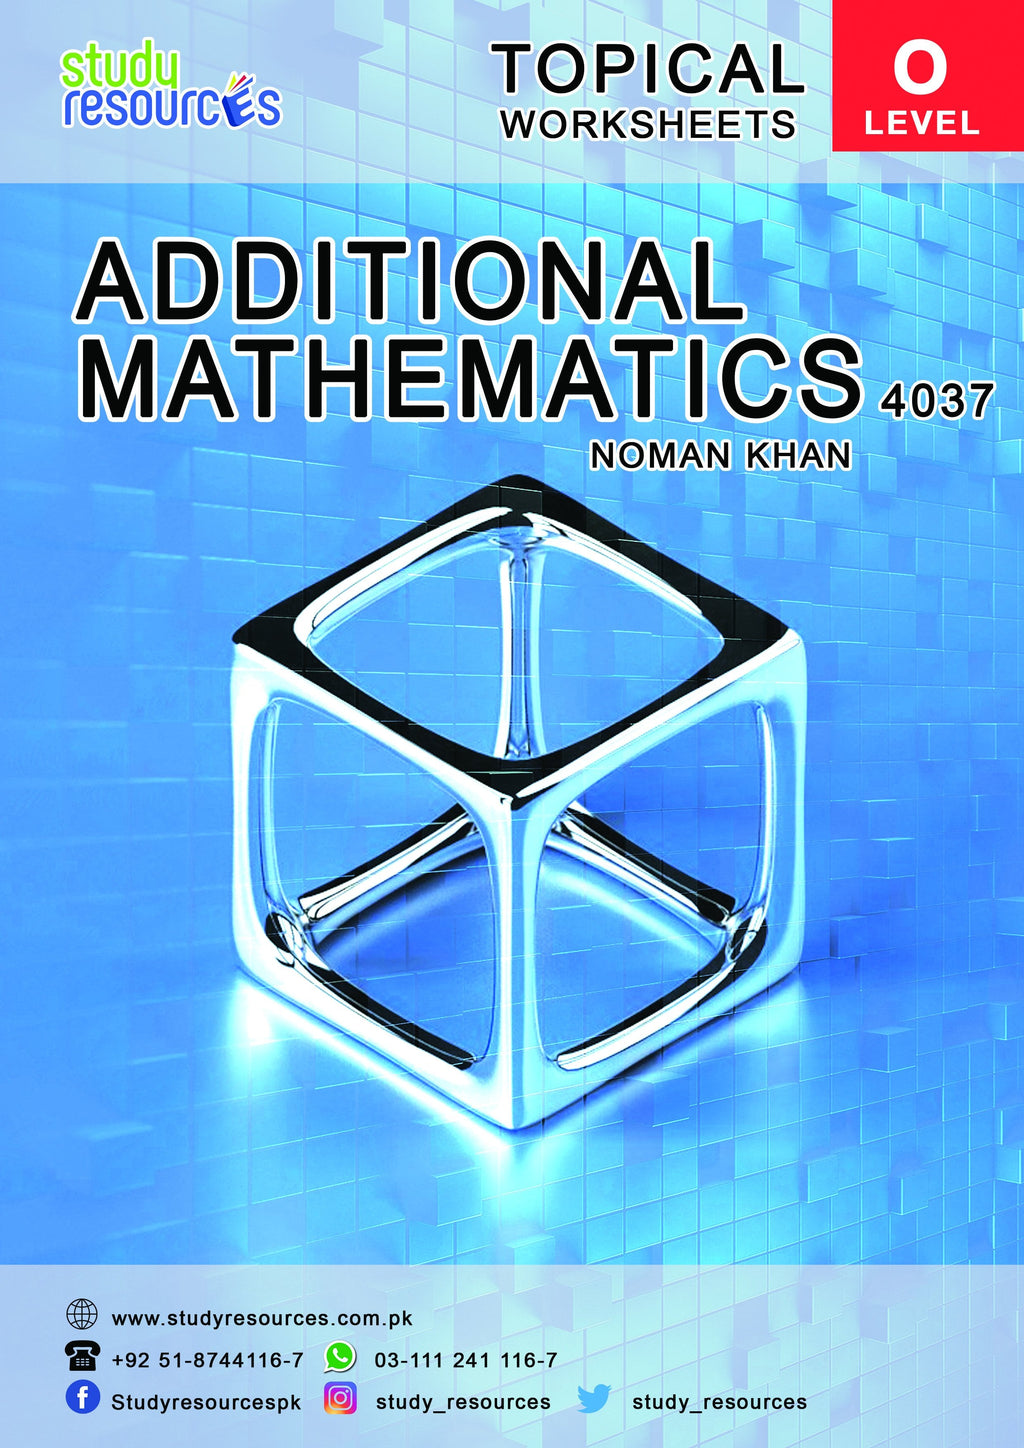 Cambridge O-Level Additional Mathematics (4037) Topical Papers by Sir. Noman Khan